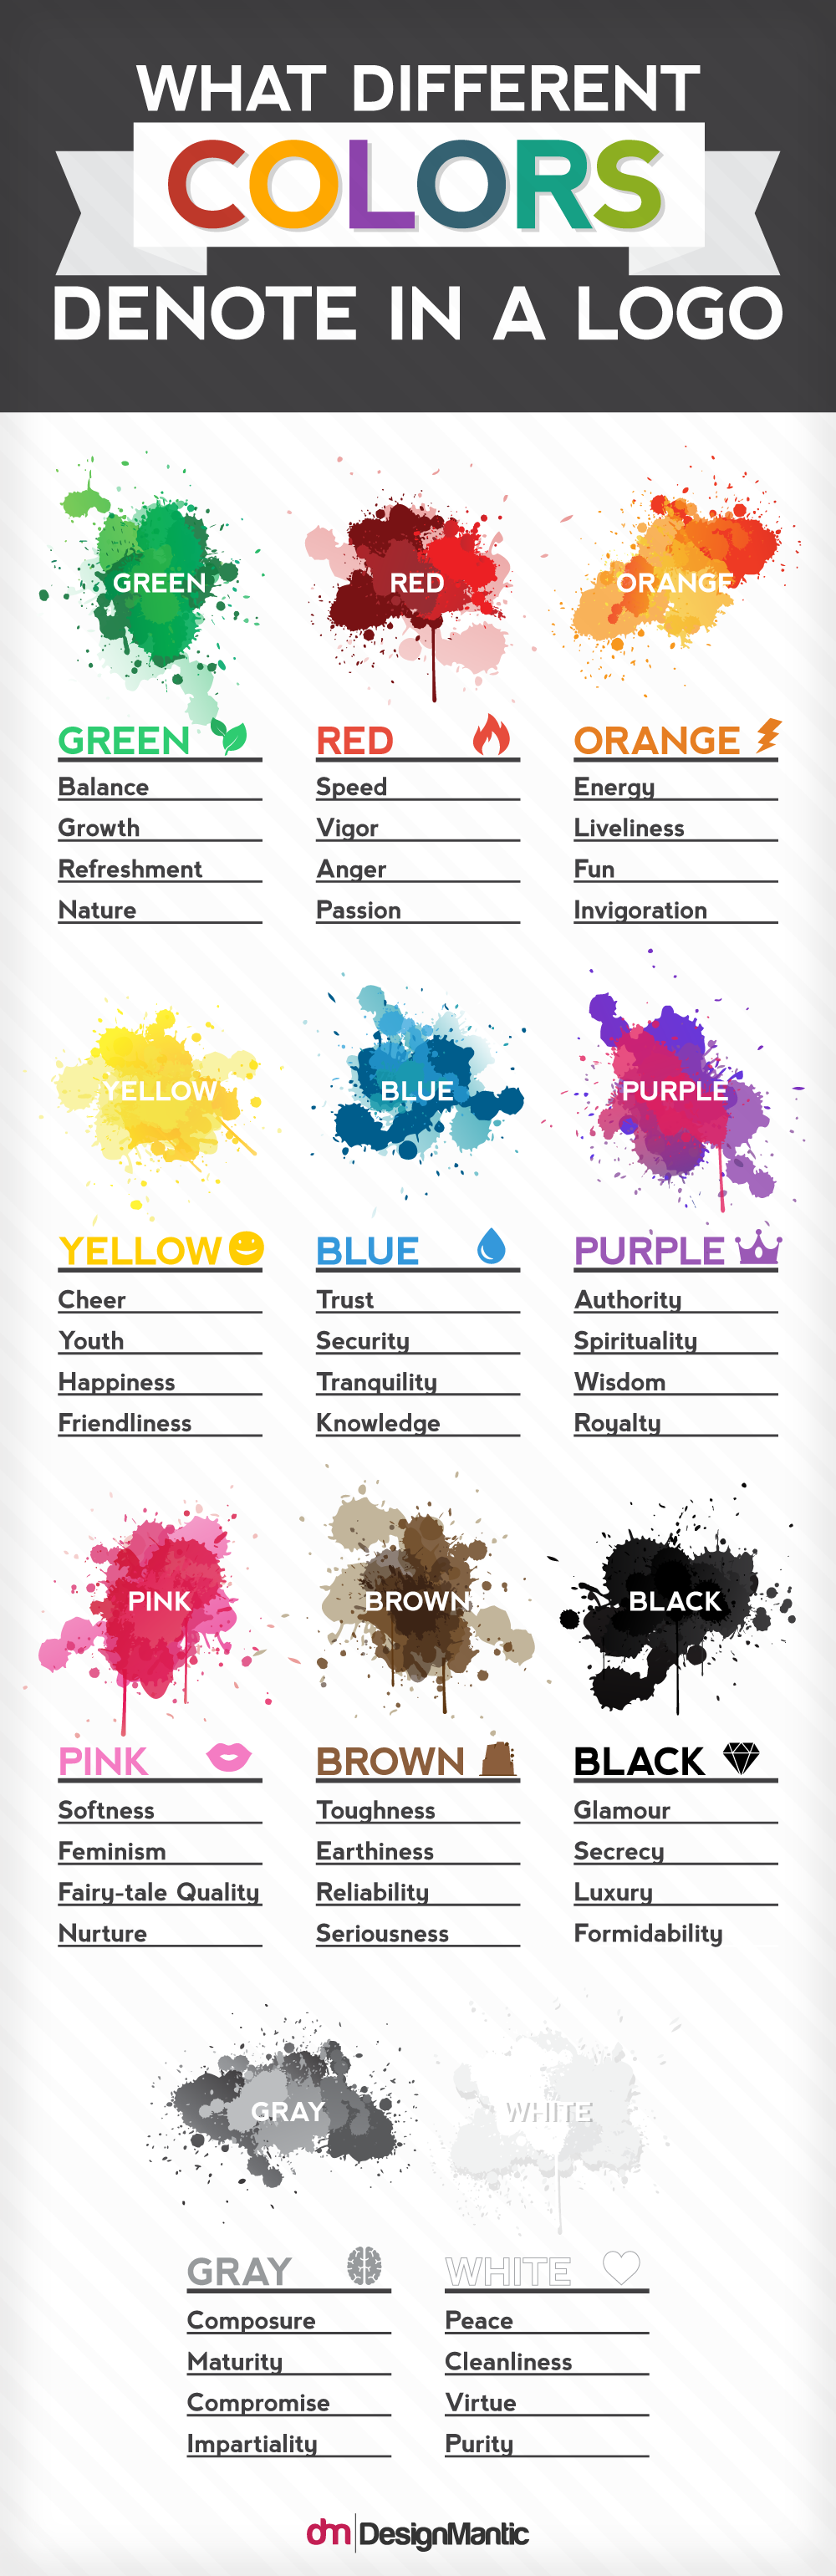 What Different Colors Denote In A Logo